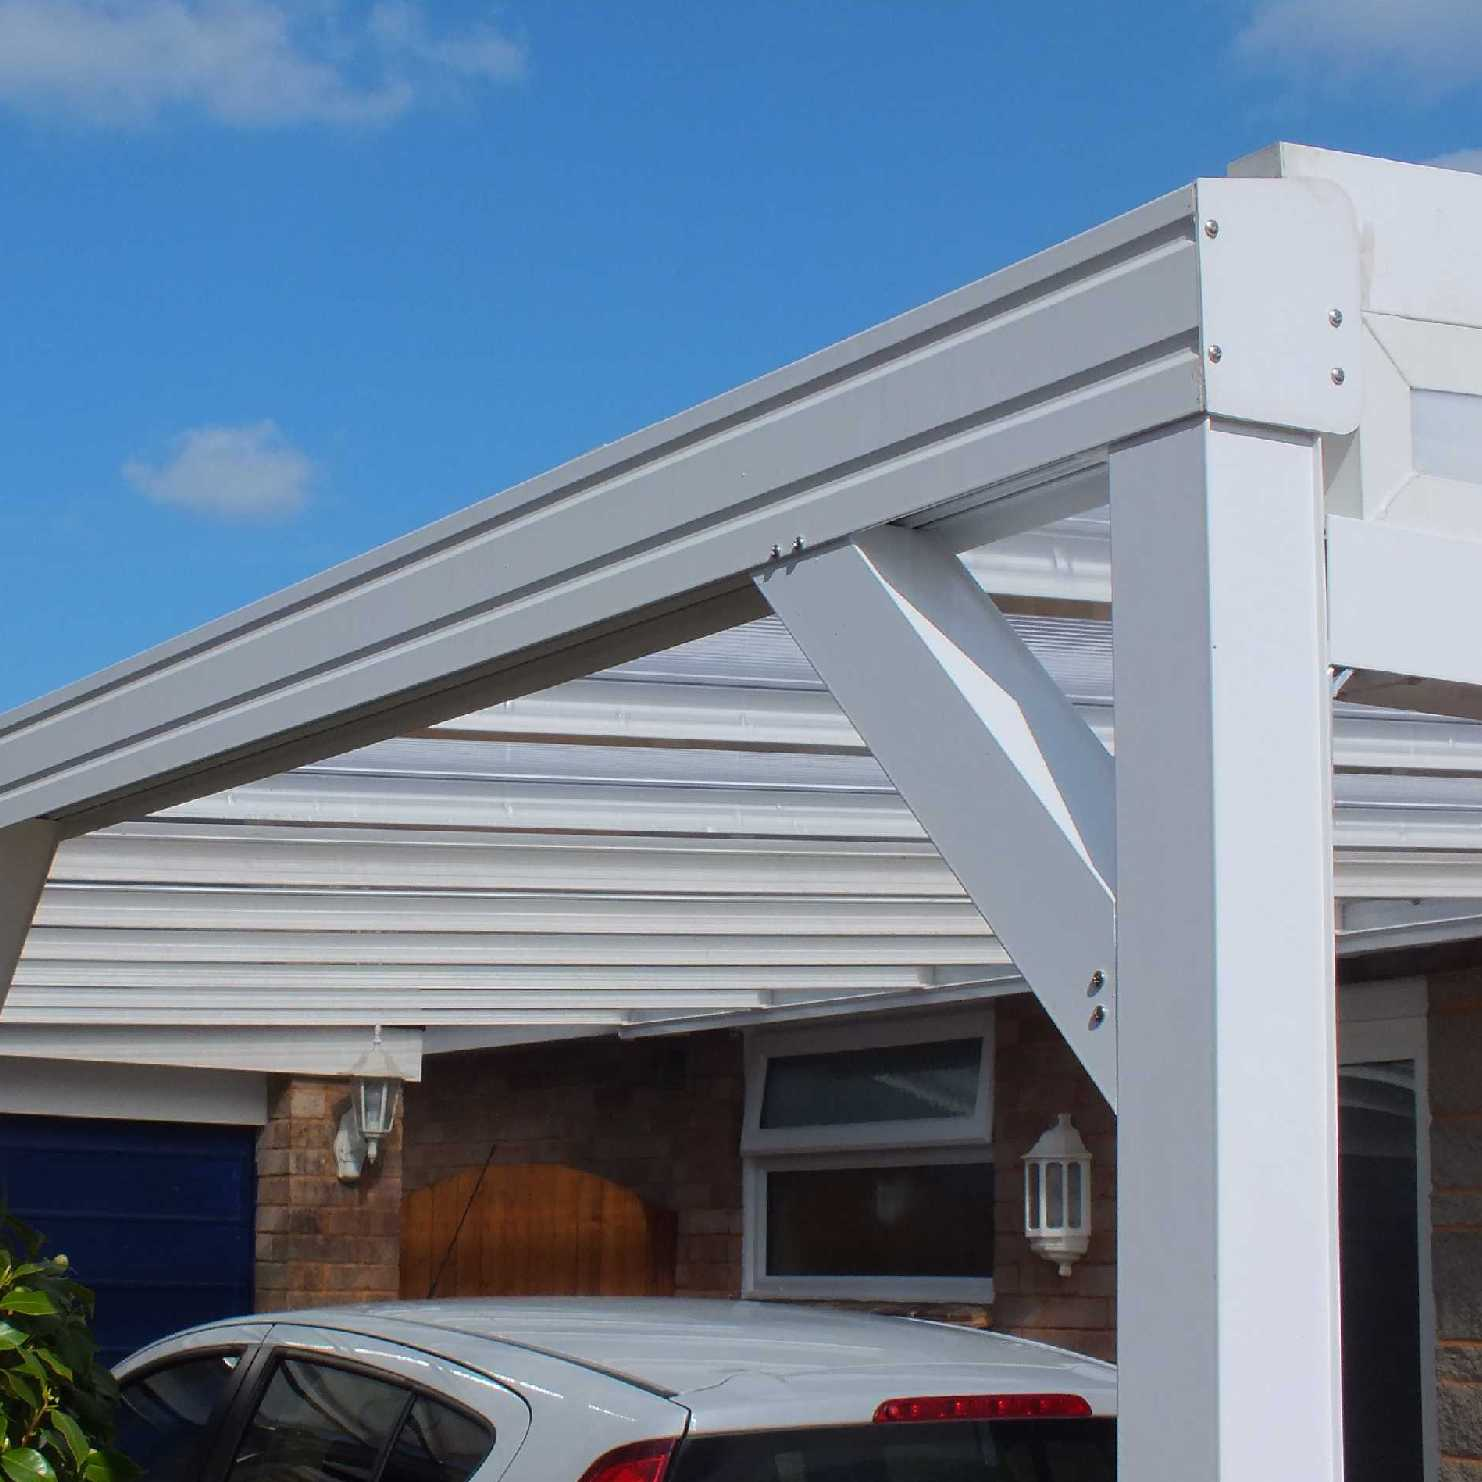 Great deals on Omega Smart White Lean-To Canopy with 16mm Polycarbonate Glazing - 4.2m (W) x 3.5m (P), (3) Supporting Posts